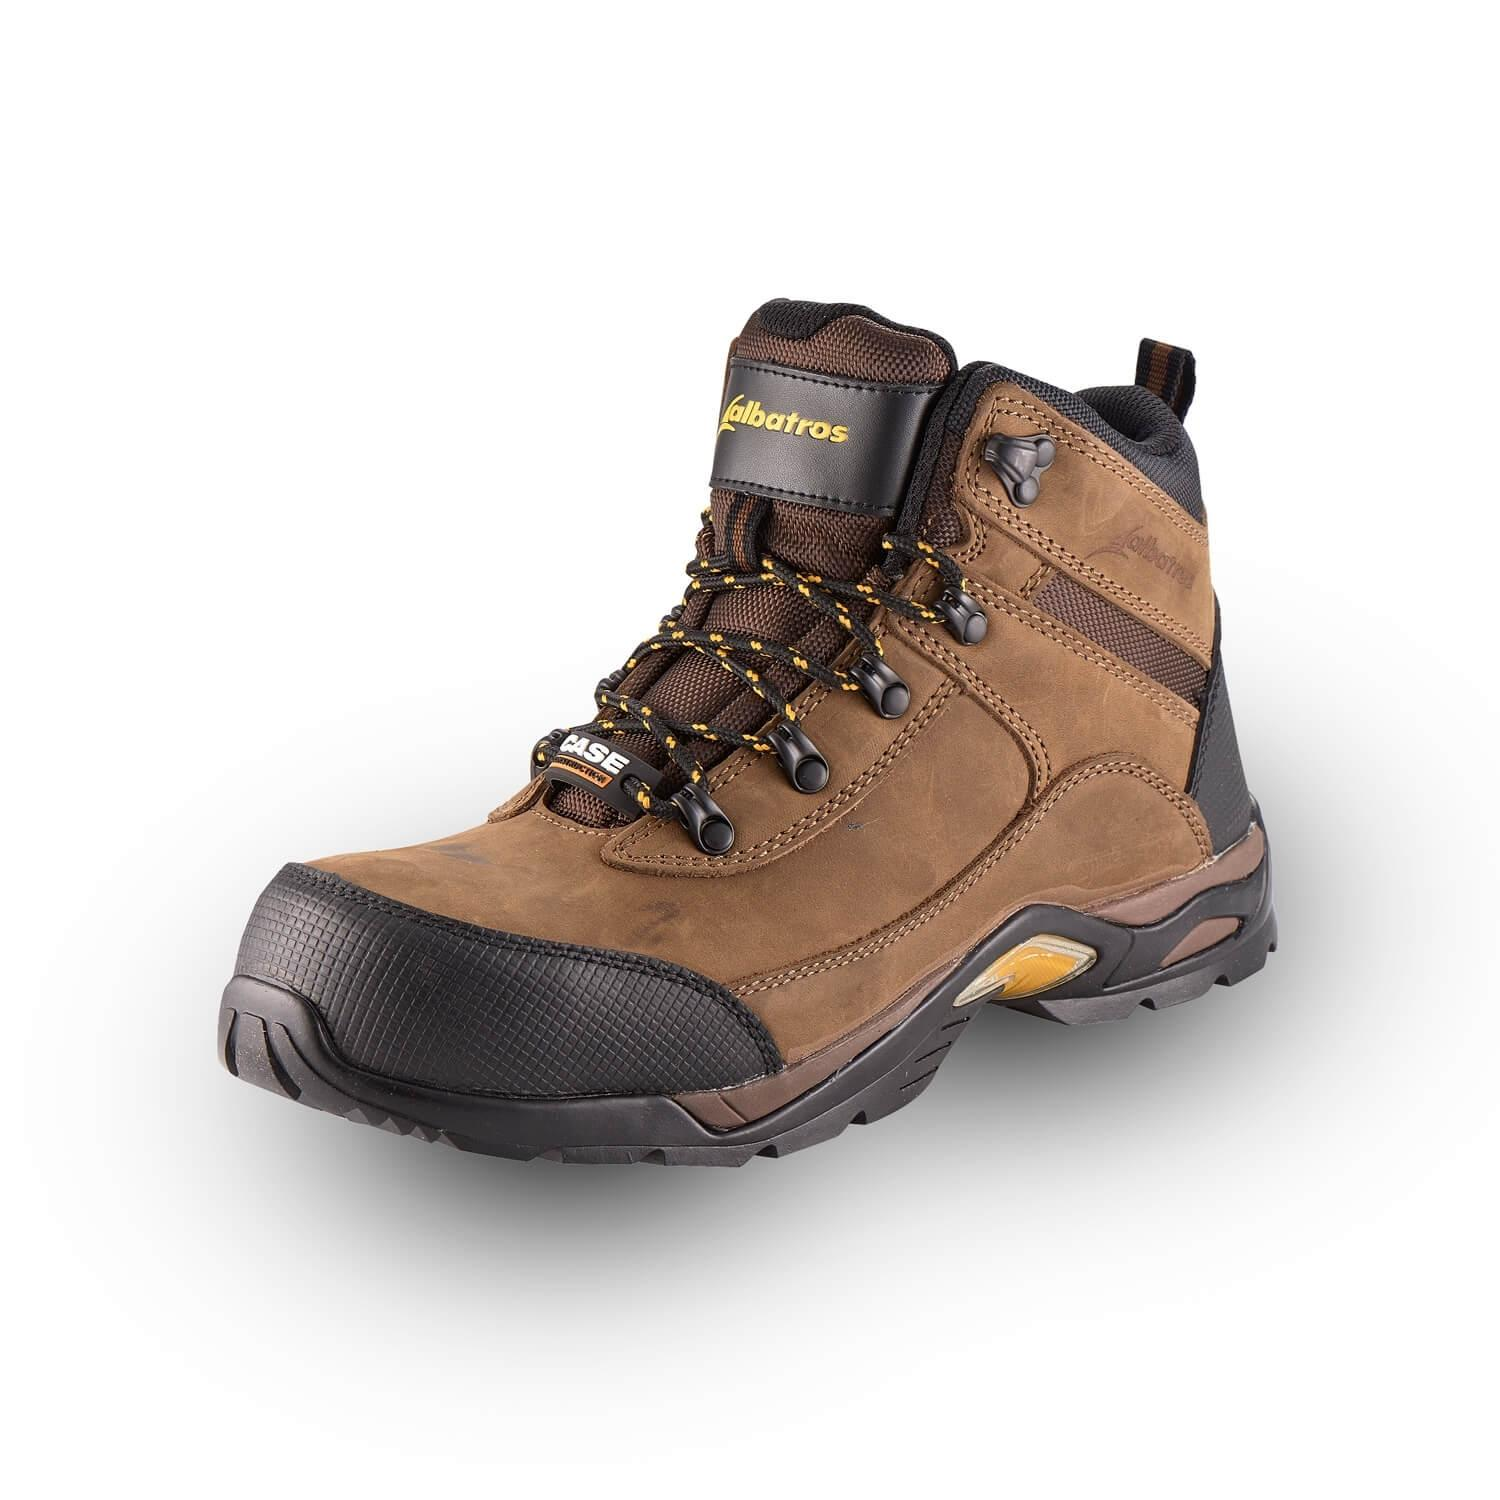 0000737 safety shoes s3